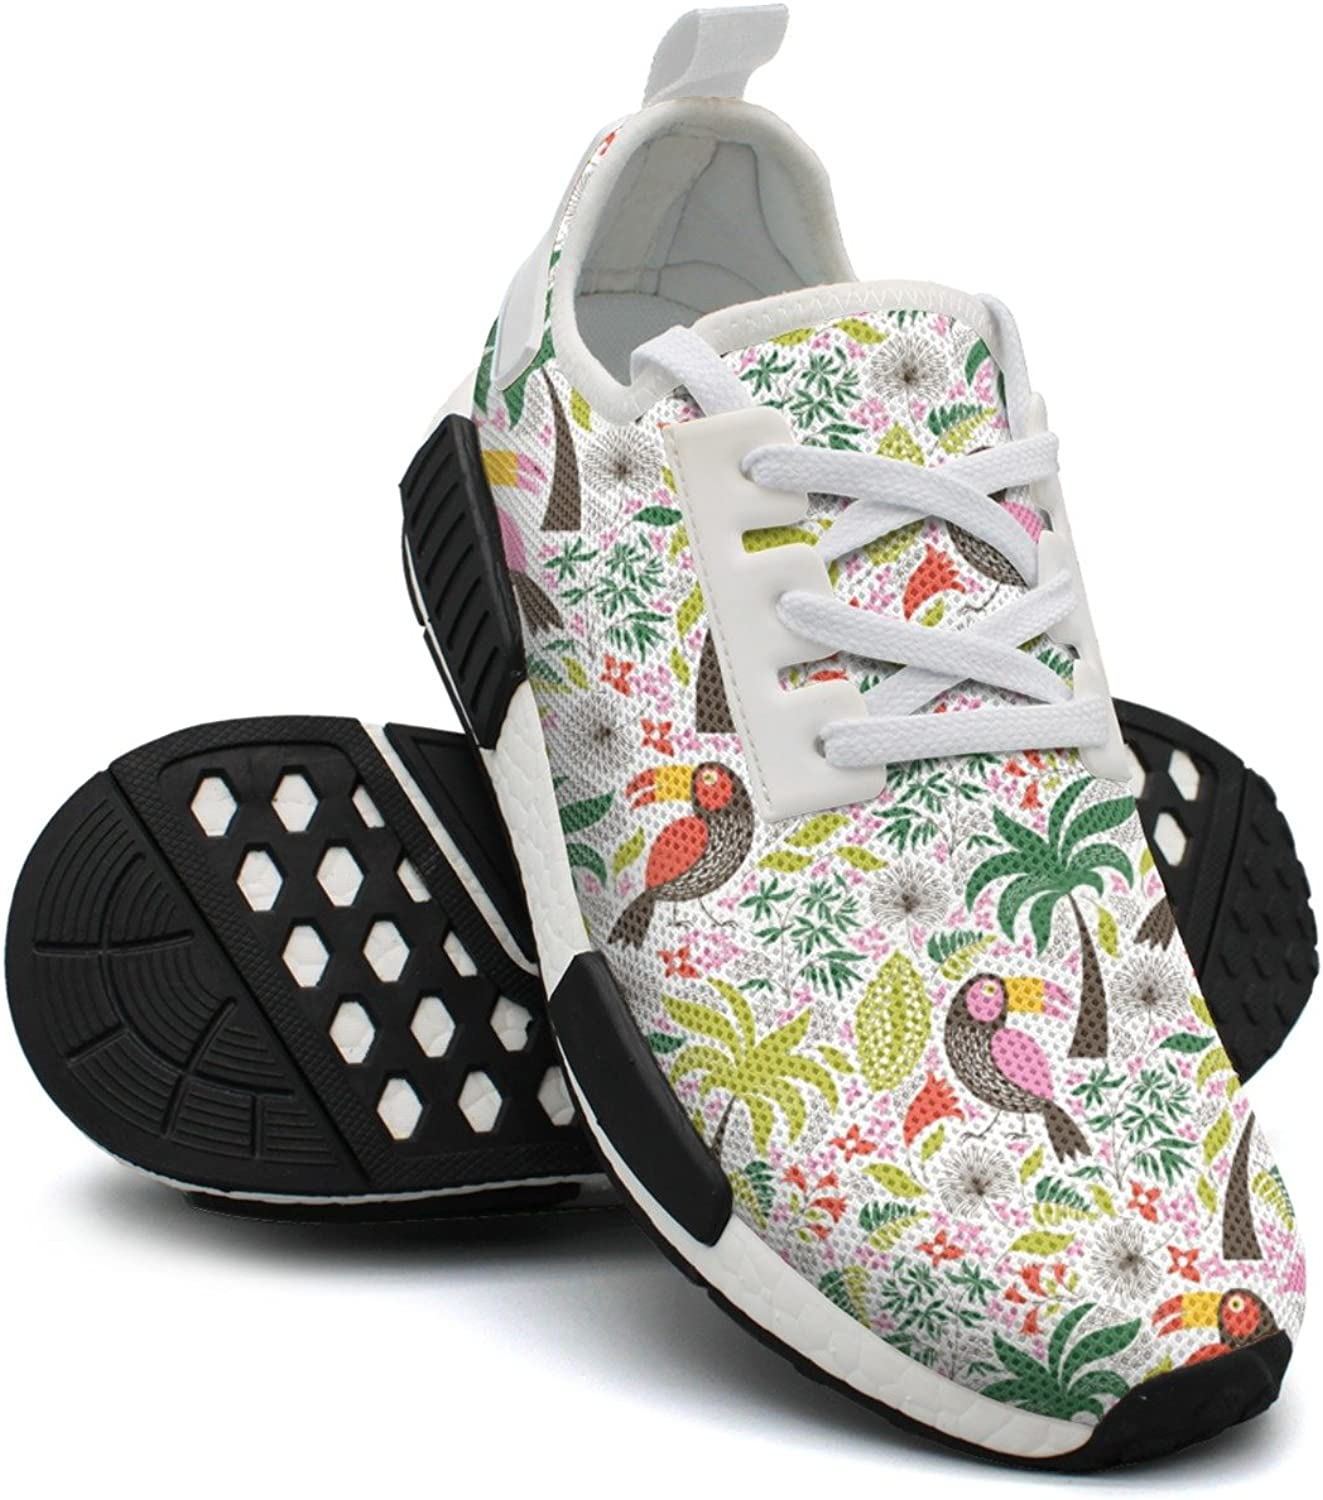 Ktyyuwwww Woman colorful Top Exotic Birds Unique Design Running shoes